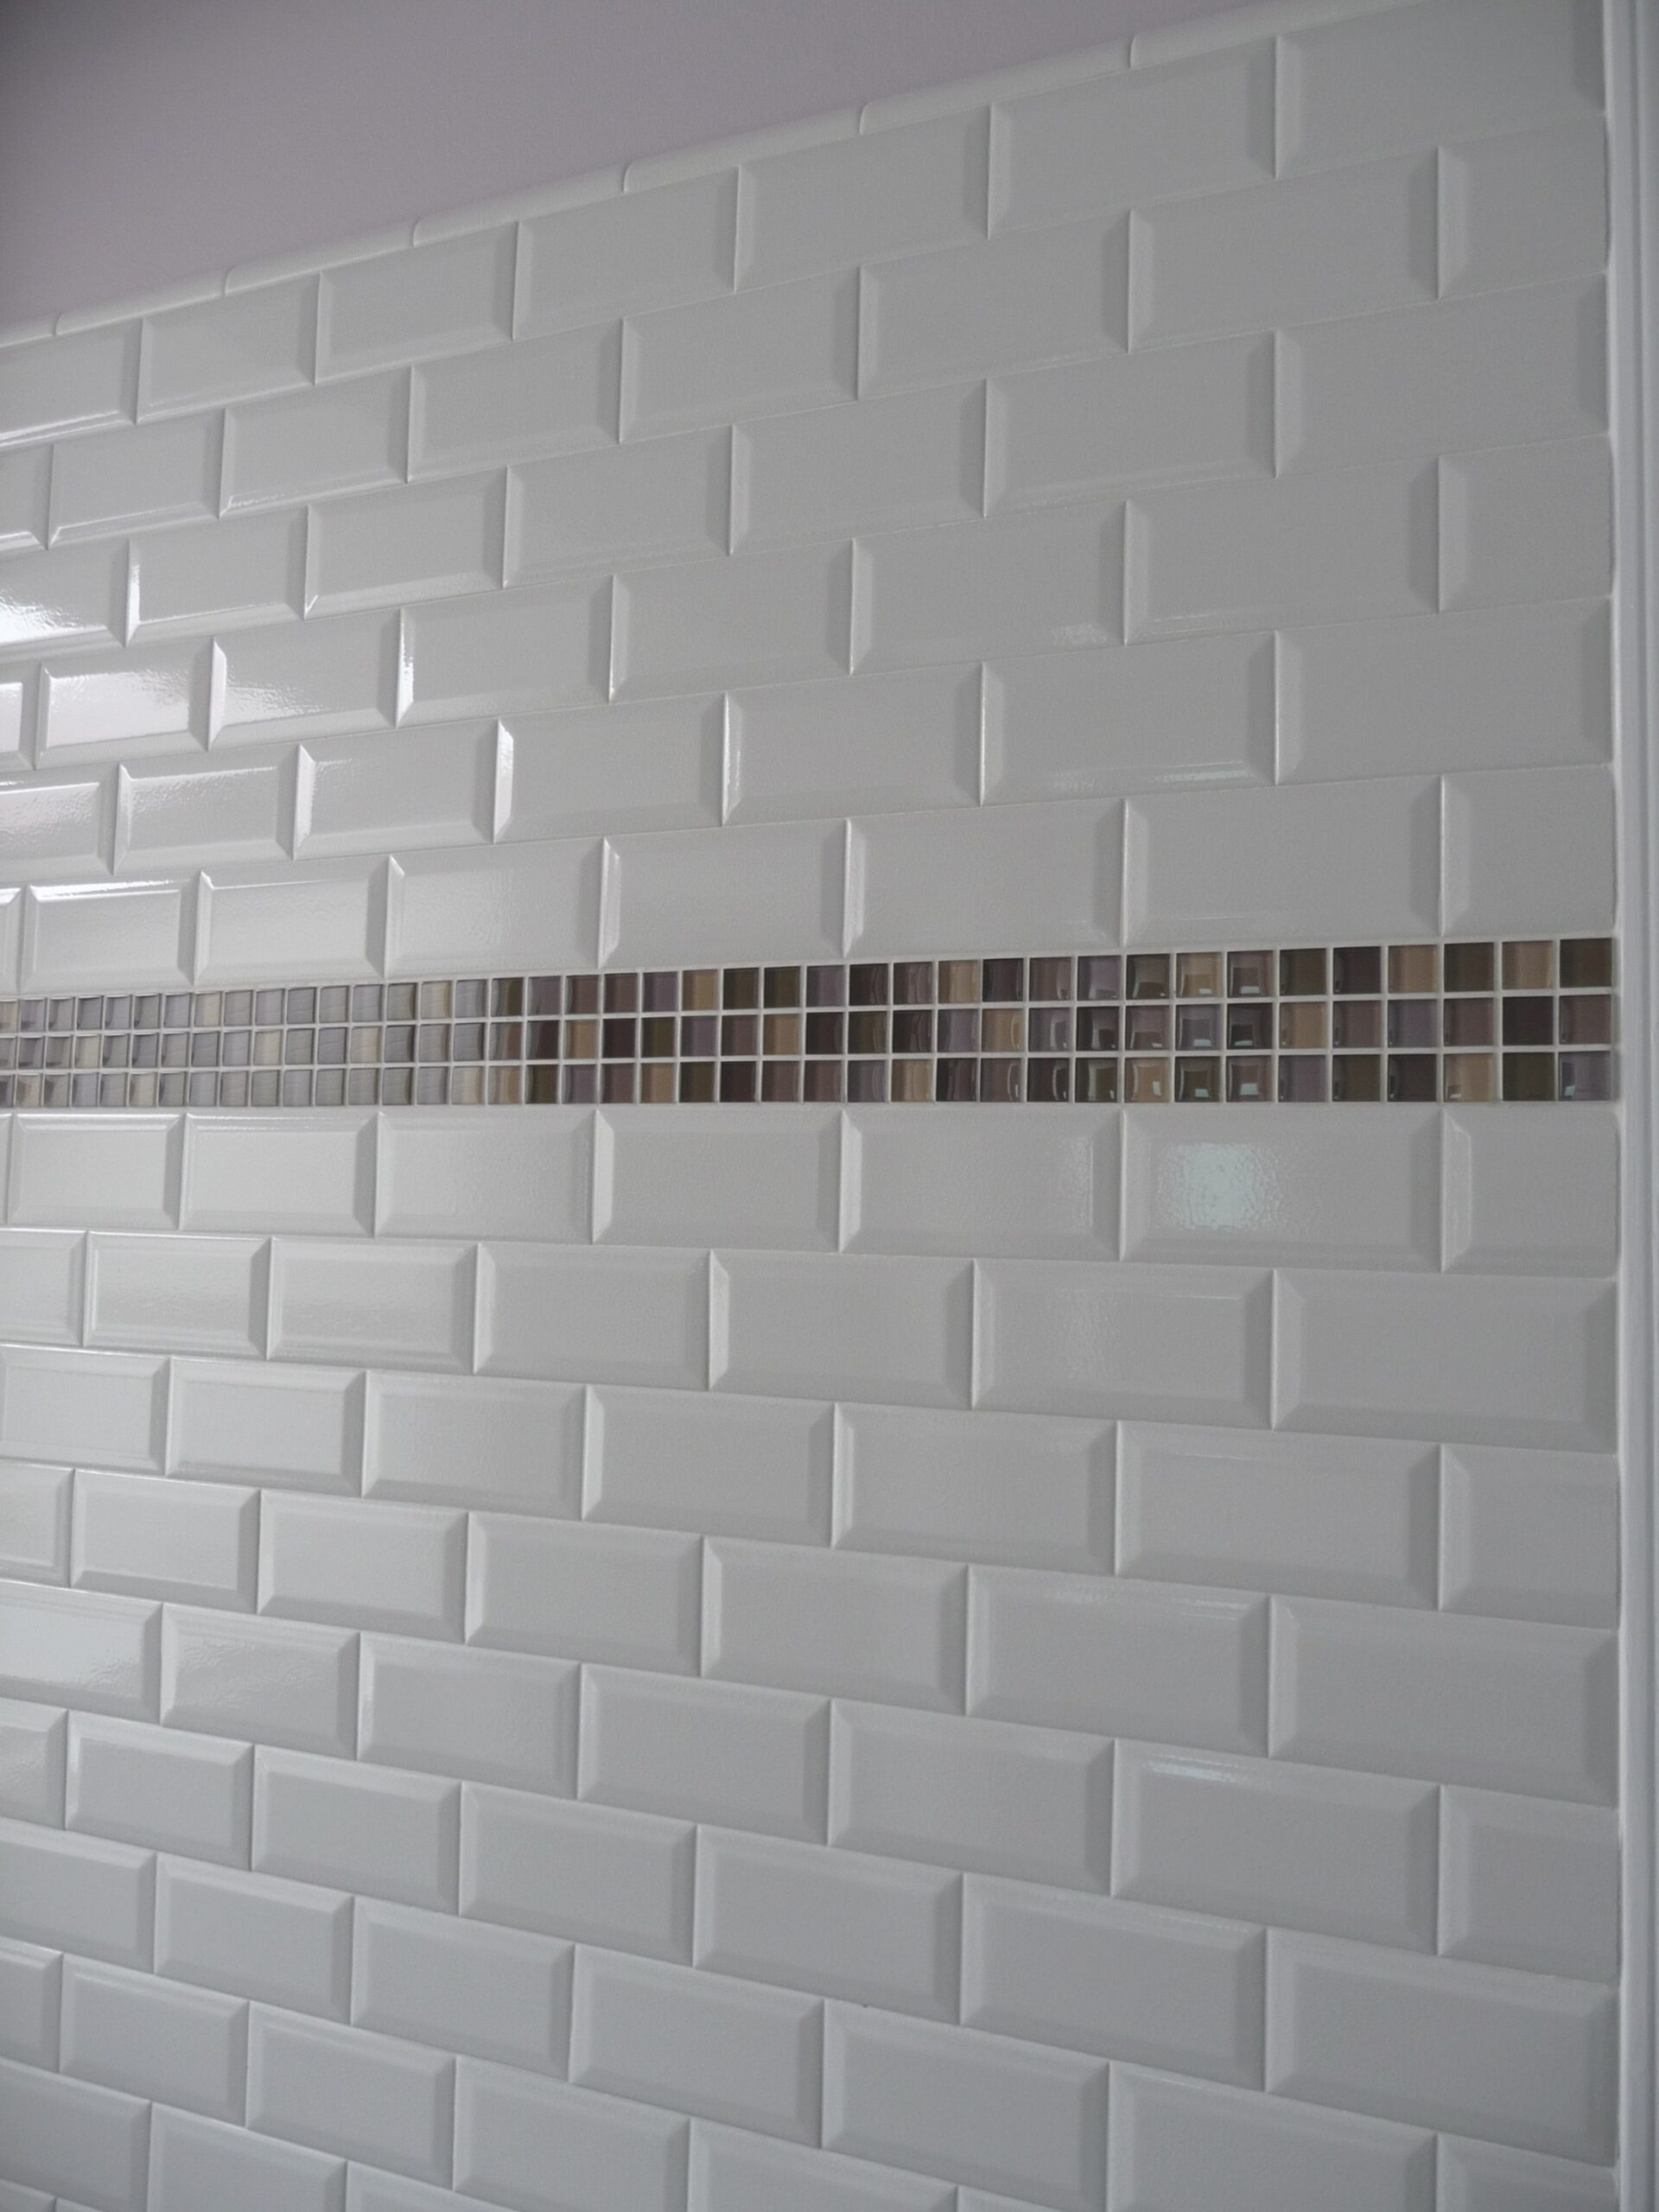 How To Choose The Best Subway Tile Sizes To Get The in What Size Tiles For Small Bathroom